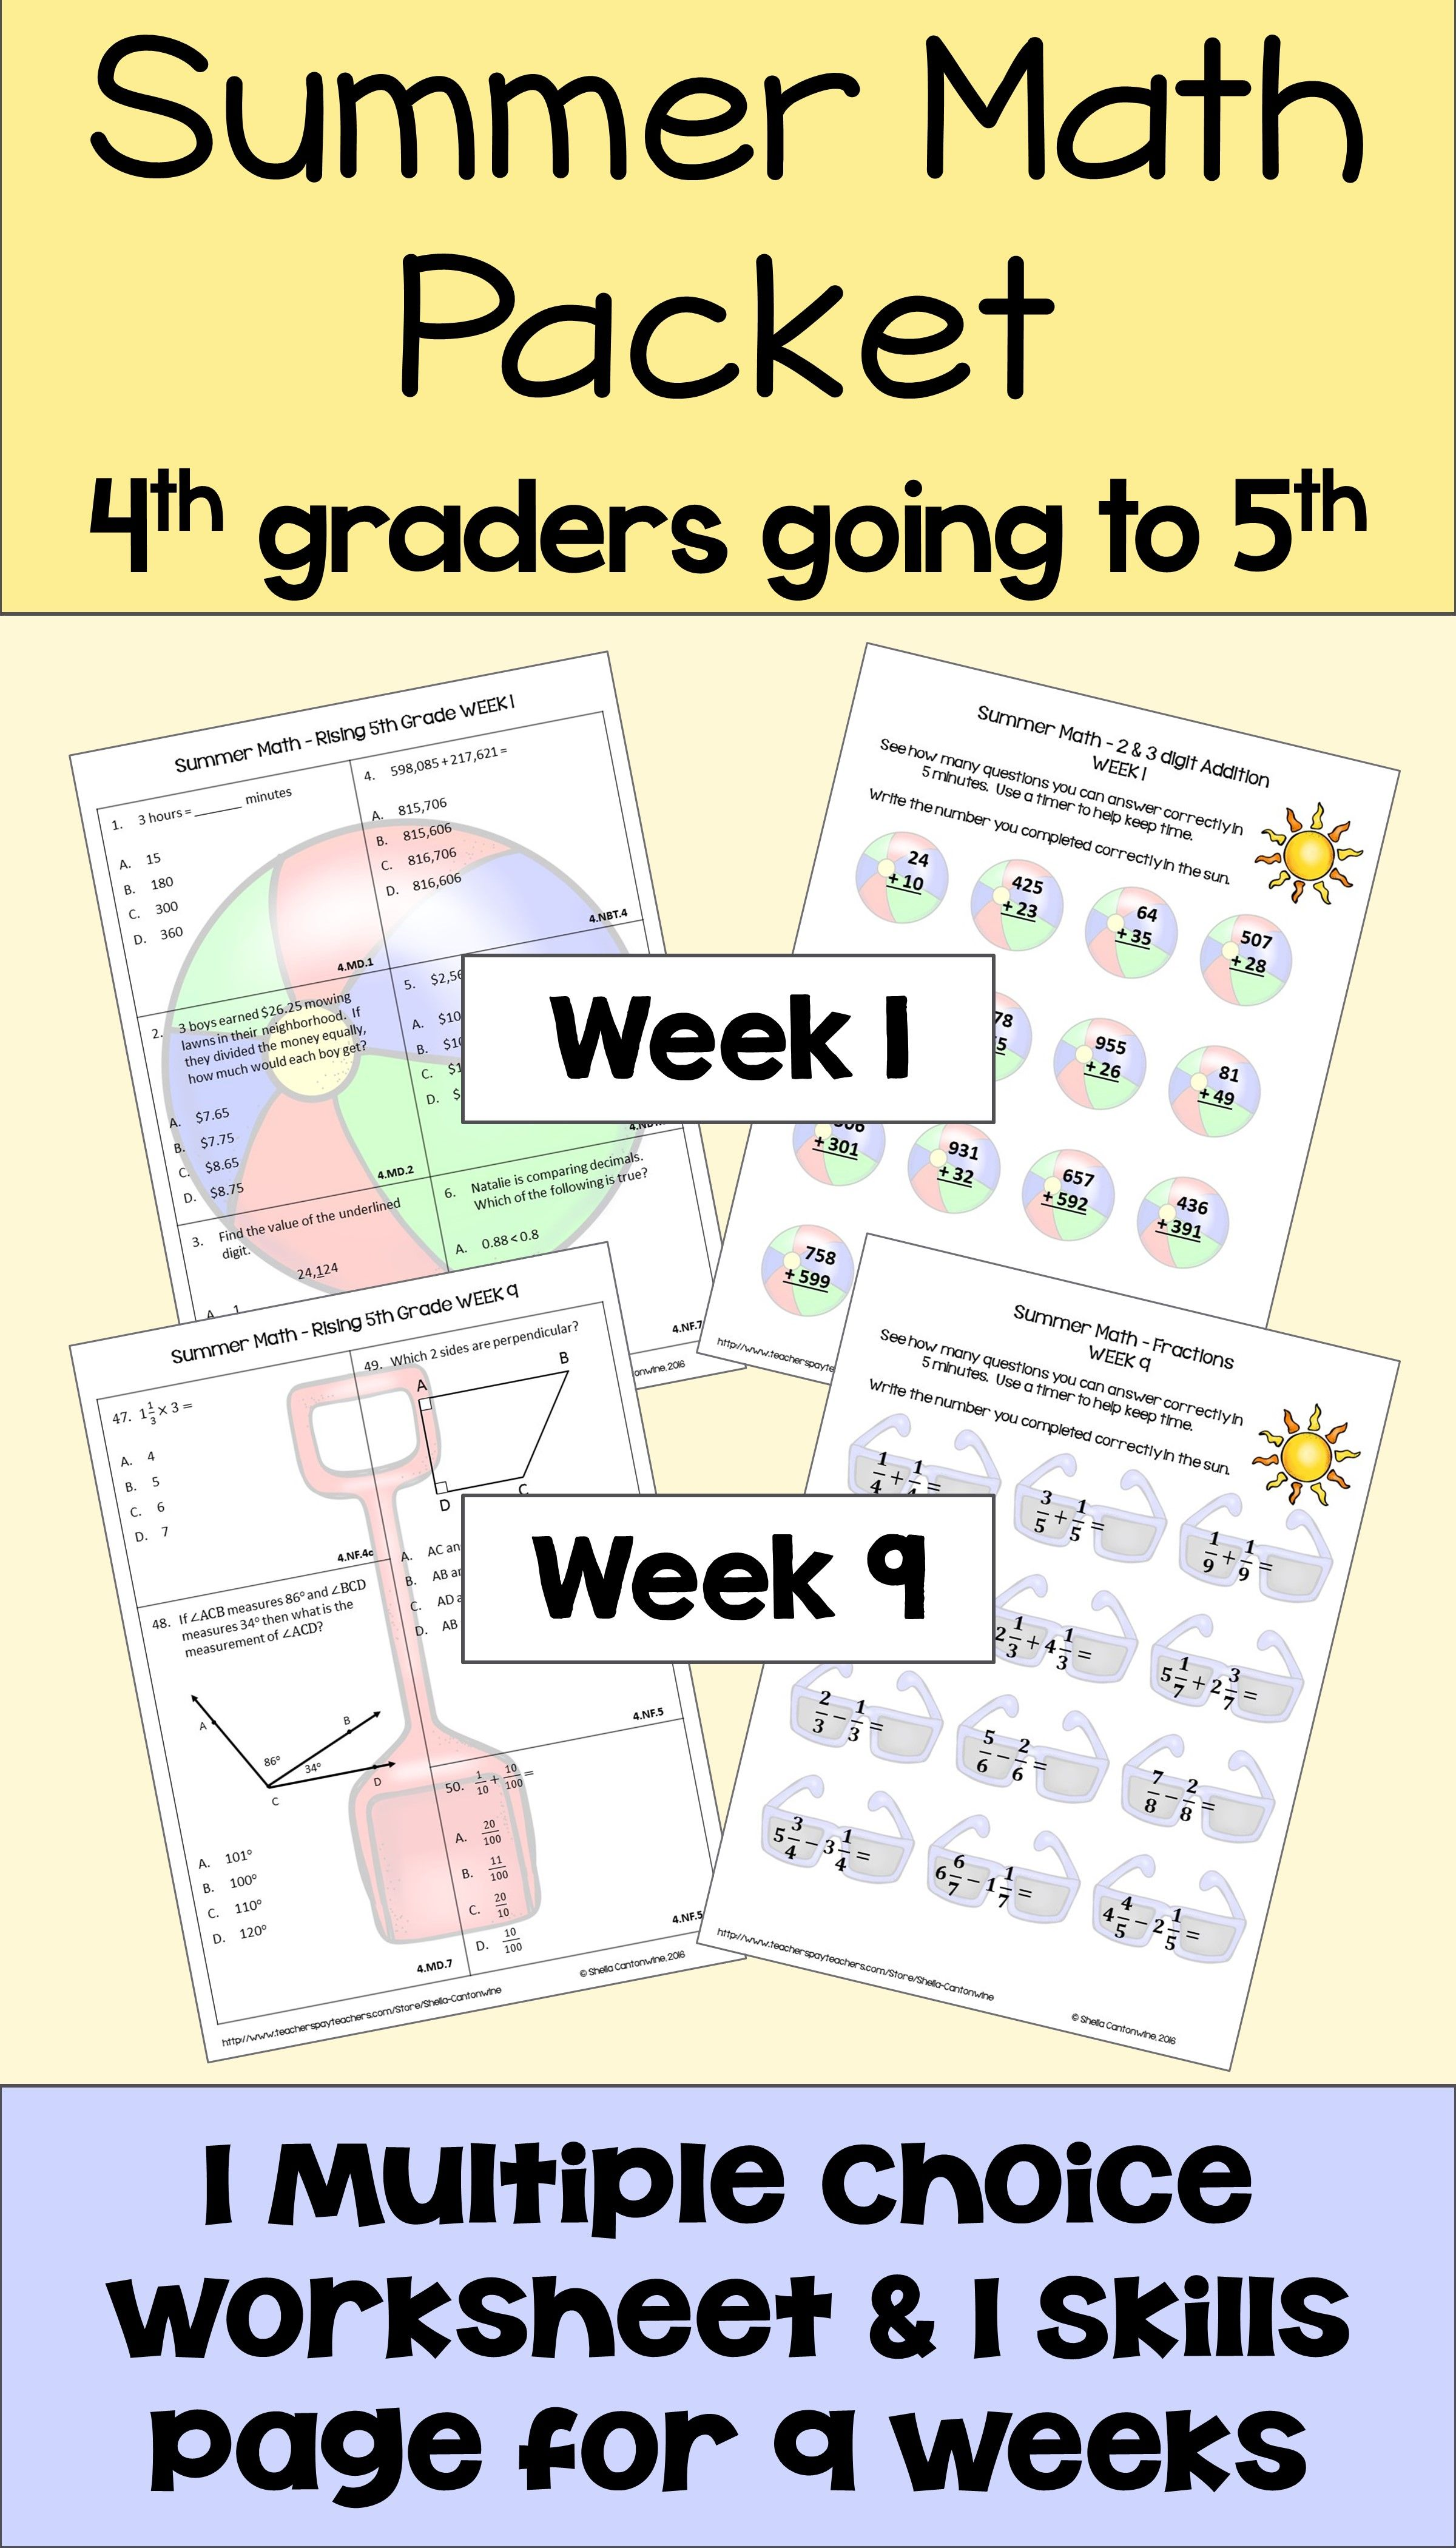 Summer Math Packet For Rising 5th Graders